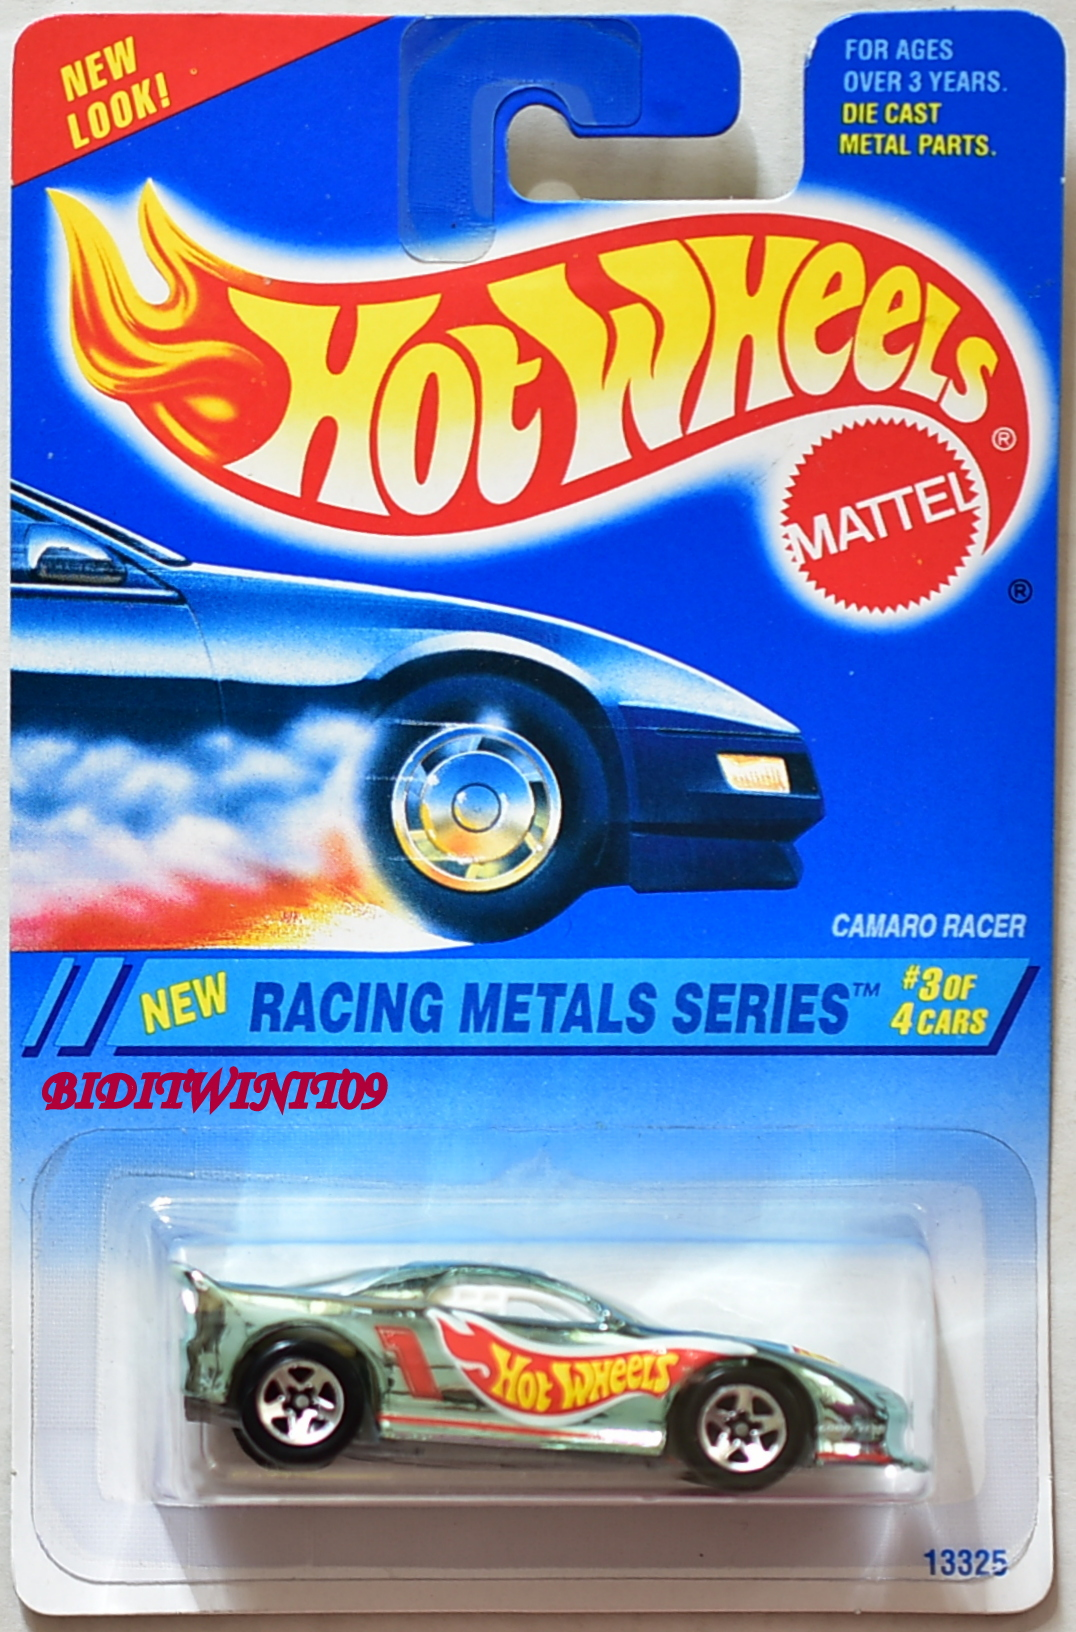 HOT WHEELS 1994 RACING METALS SERIES CAMARO RACER #3/4